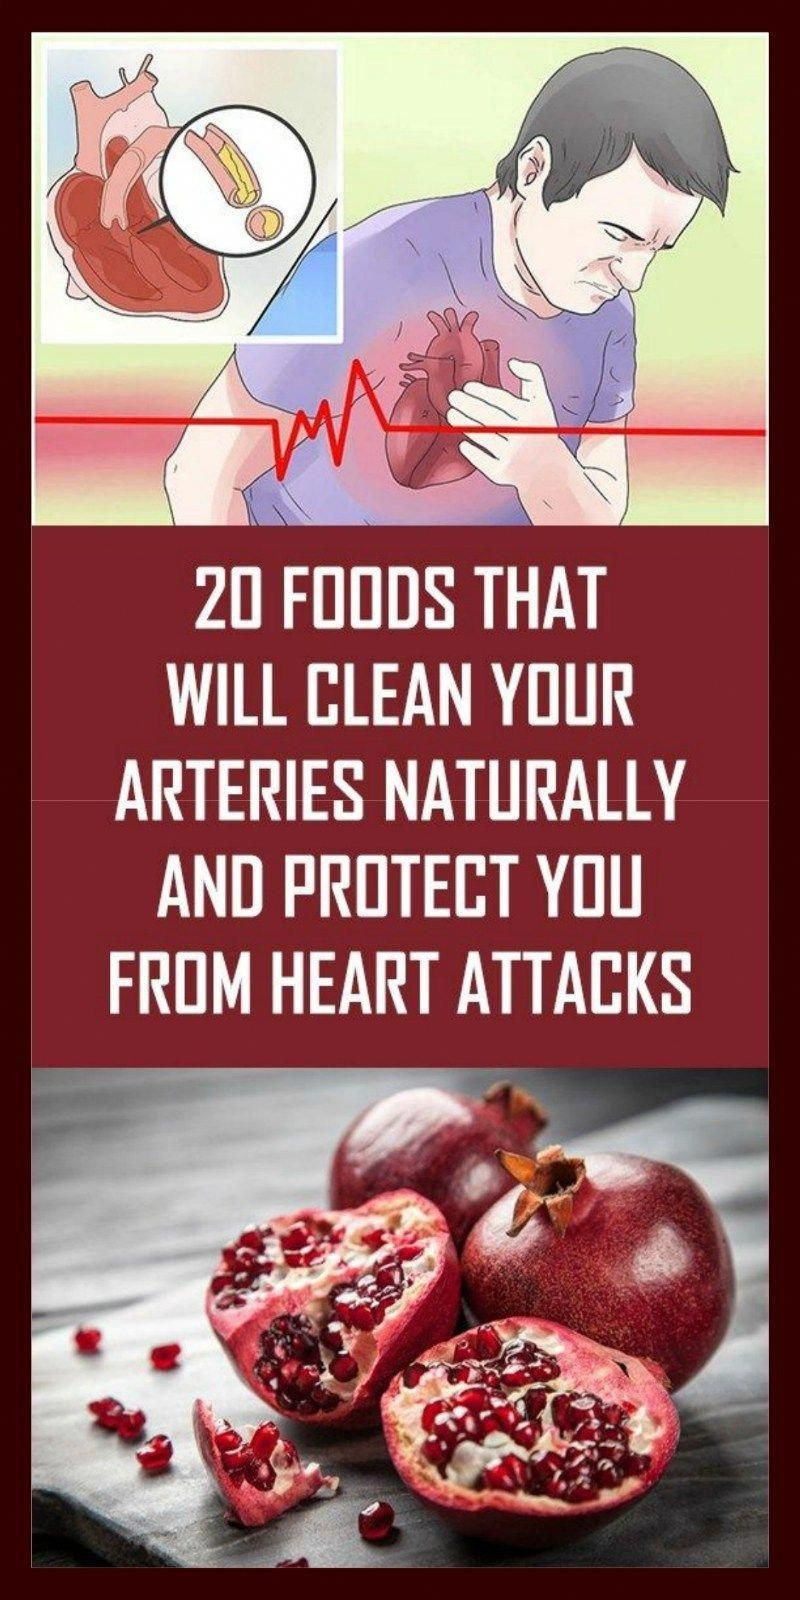 20 Foods That Will Clean Your Arteries Naturally And